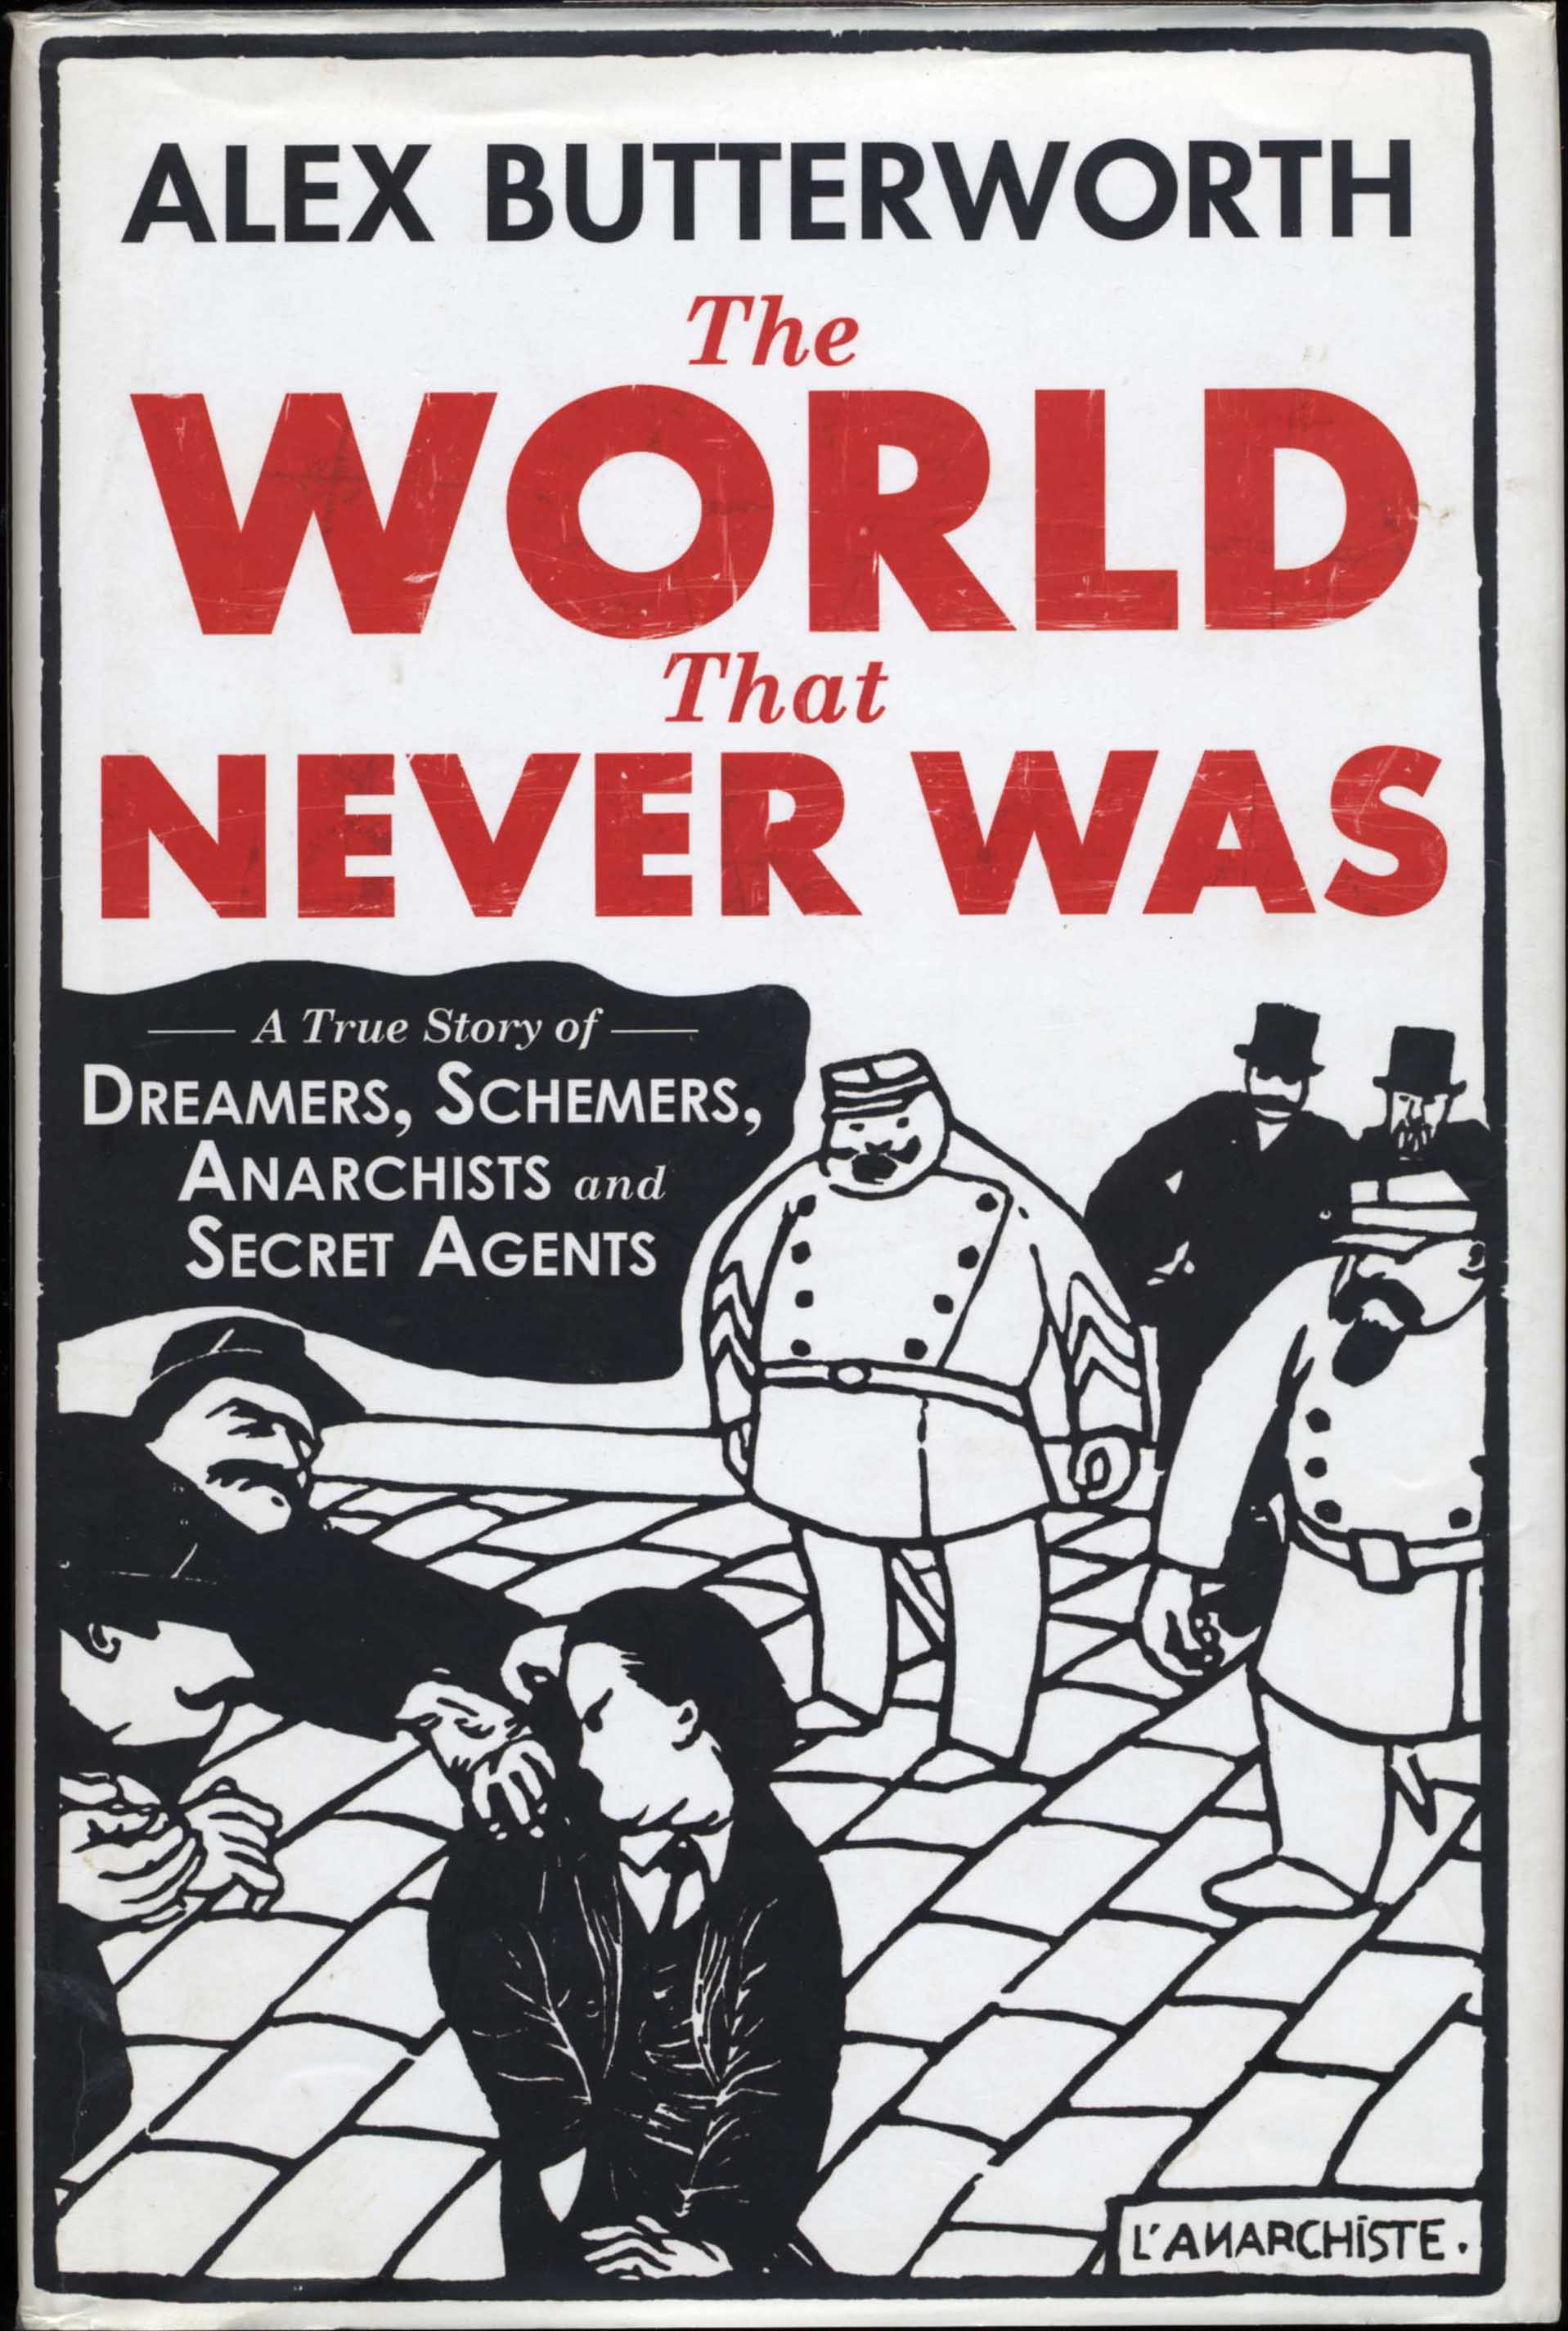 The World That Never Was. A True Story of Dreamers, Schemers, Anarchists and Secret Agents